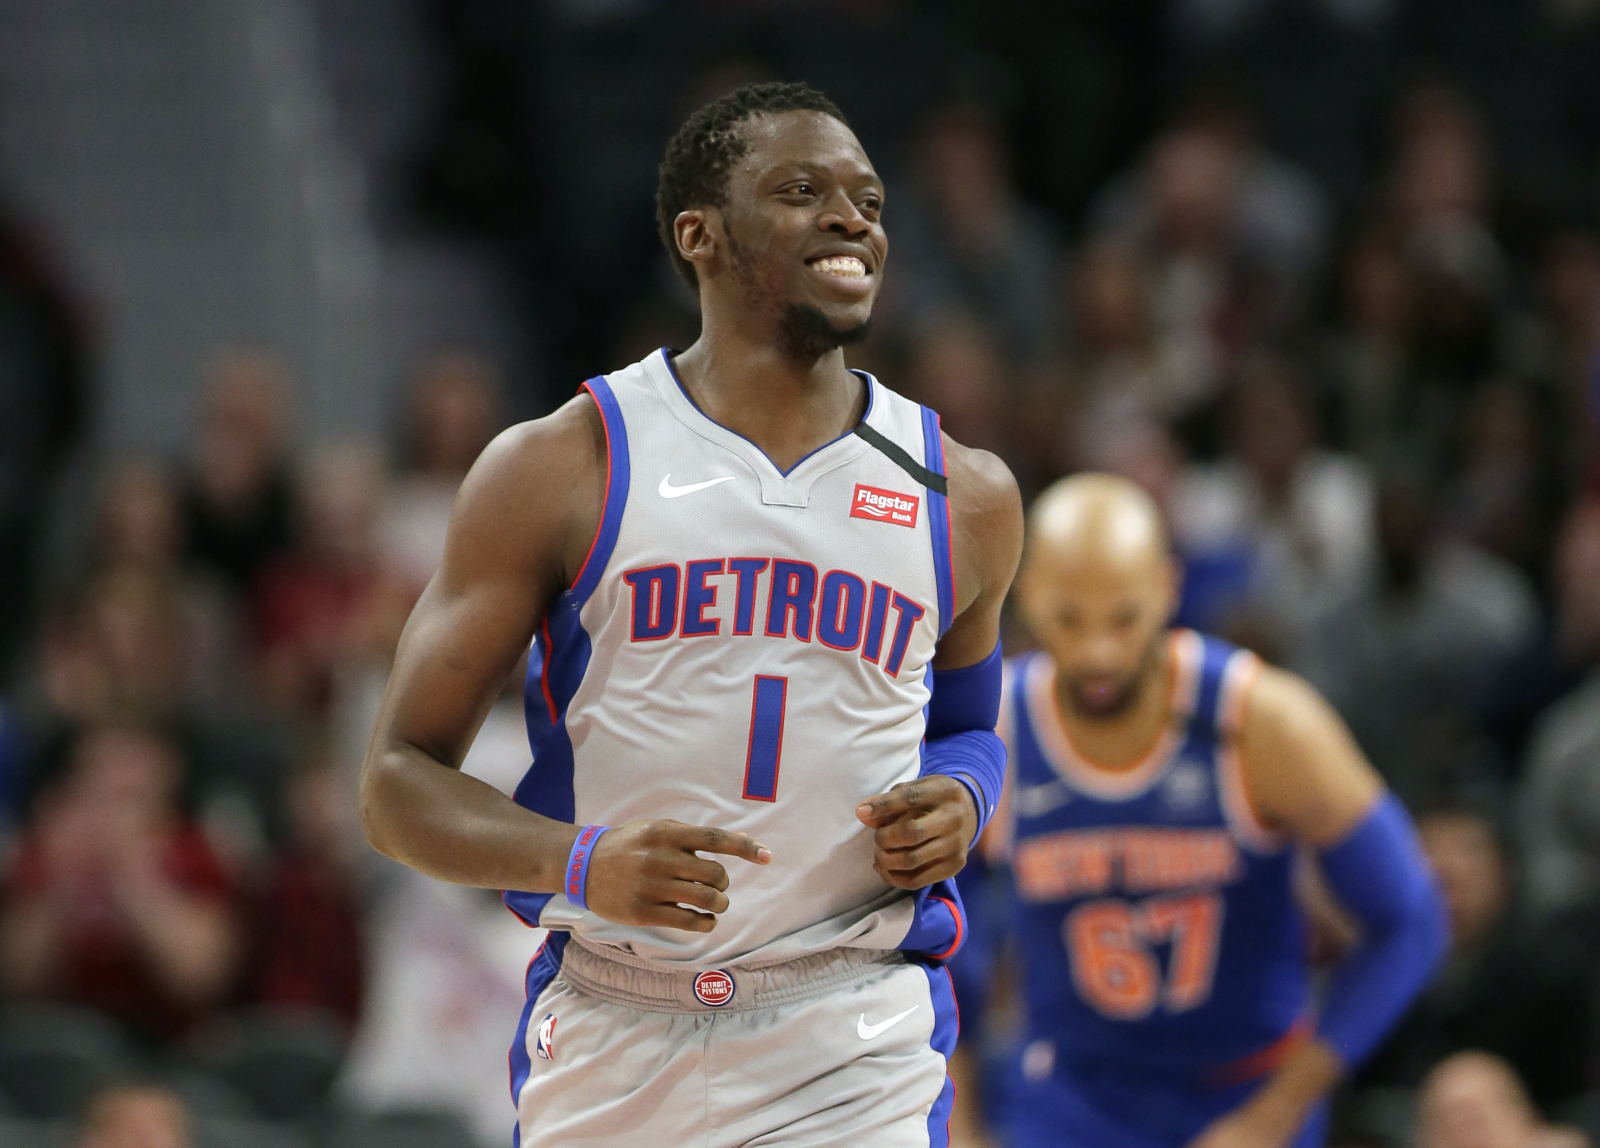 The Detroit Pistons have reached an agreement to buyout Reggie Jackson